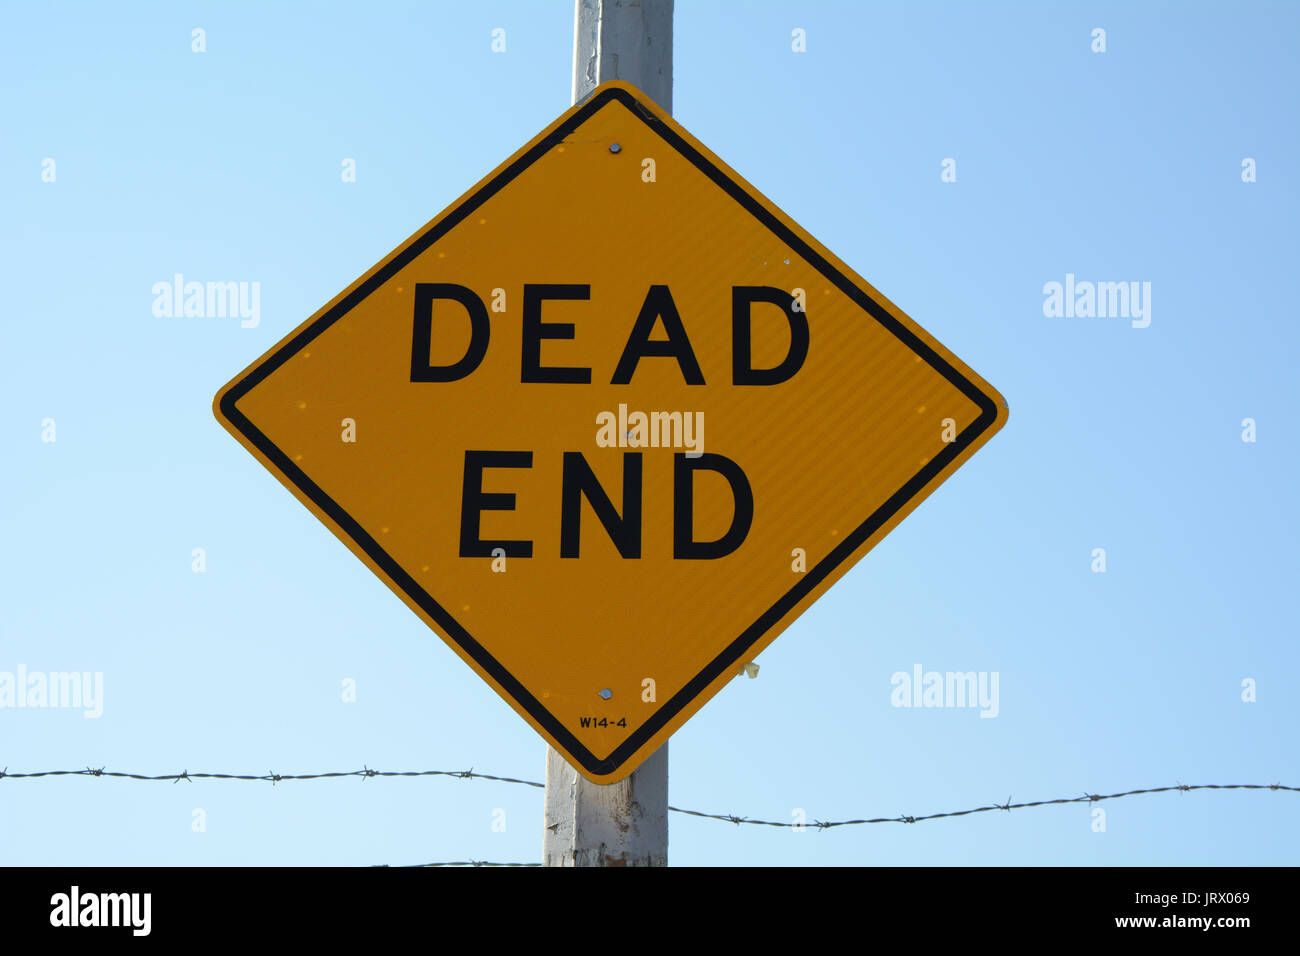 Dead End Street Sign - Stock Image